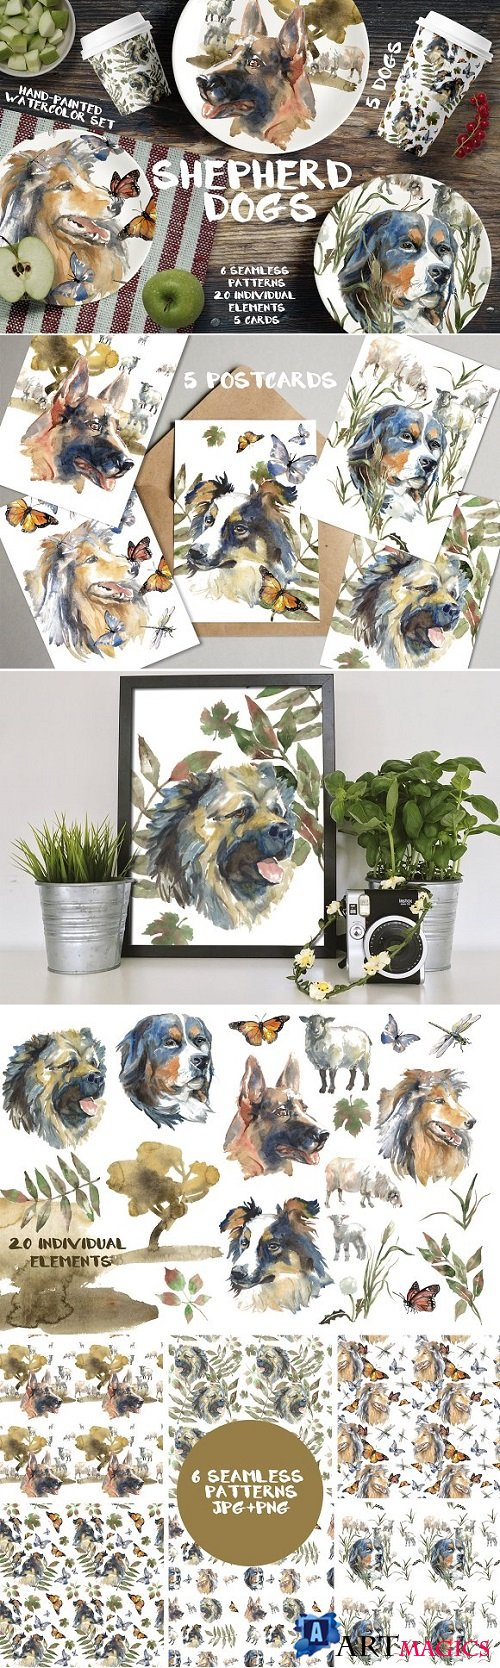 Shepherd dogs watercolor set - 2203945